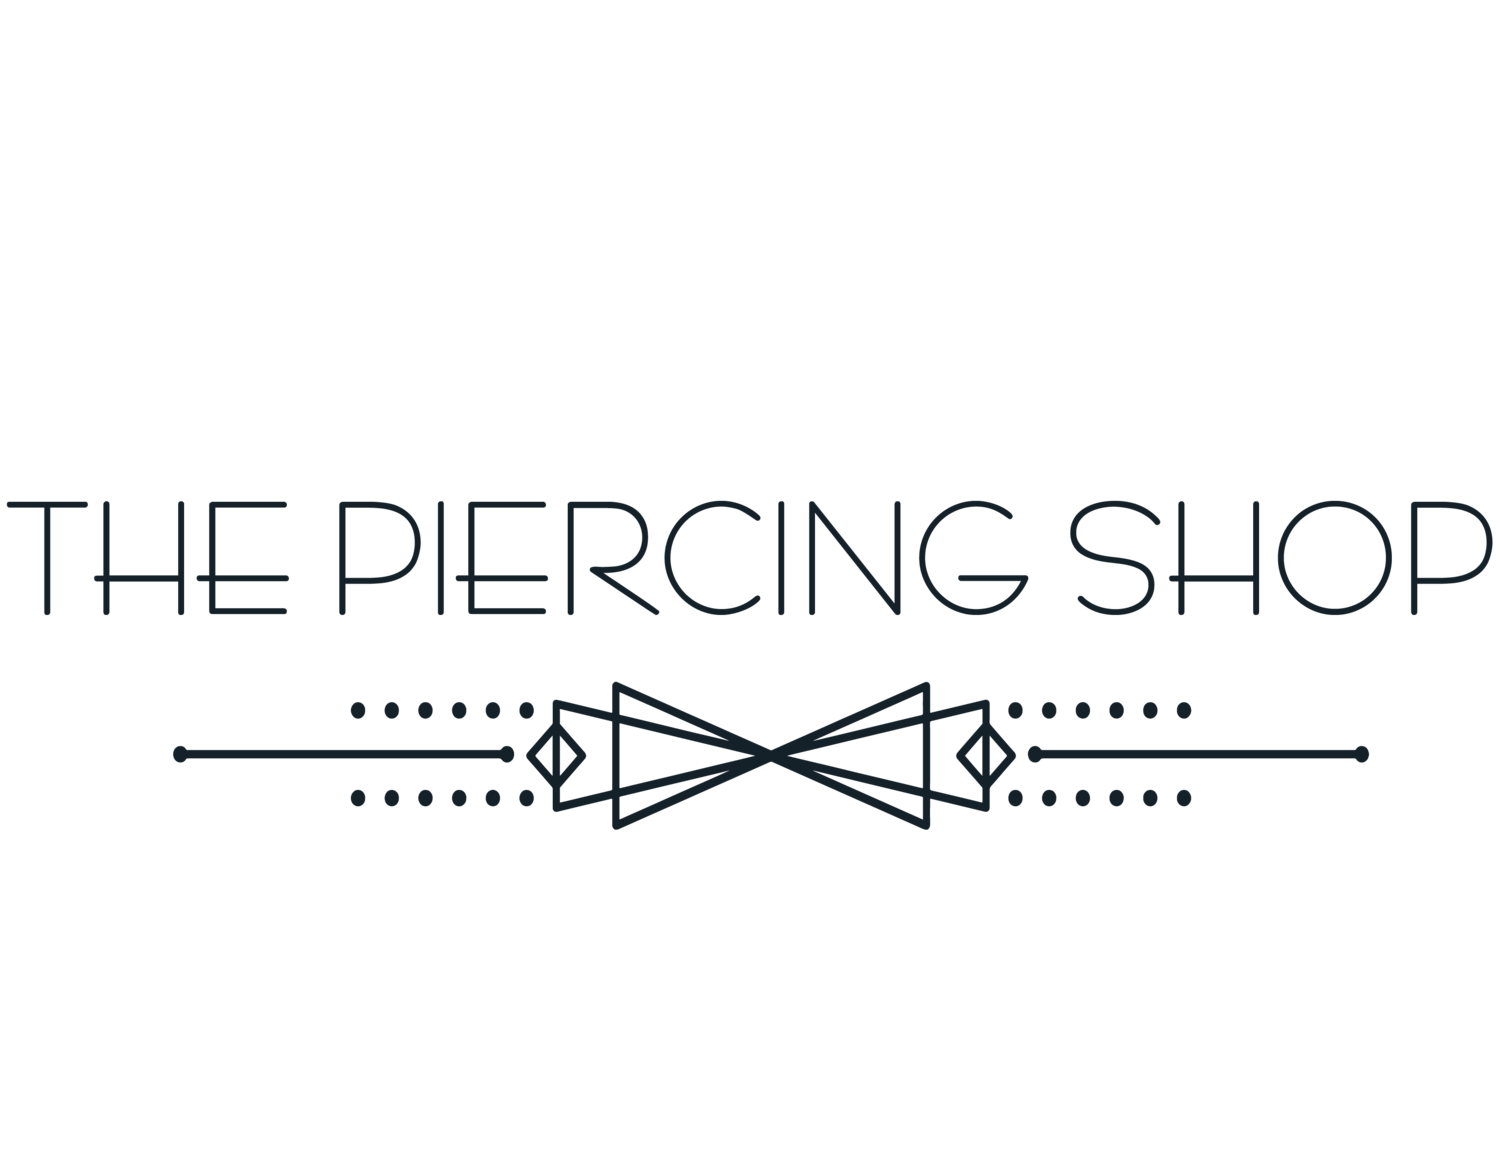 The Piercing Shop